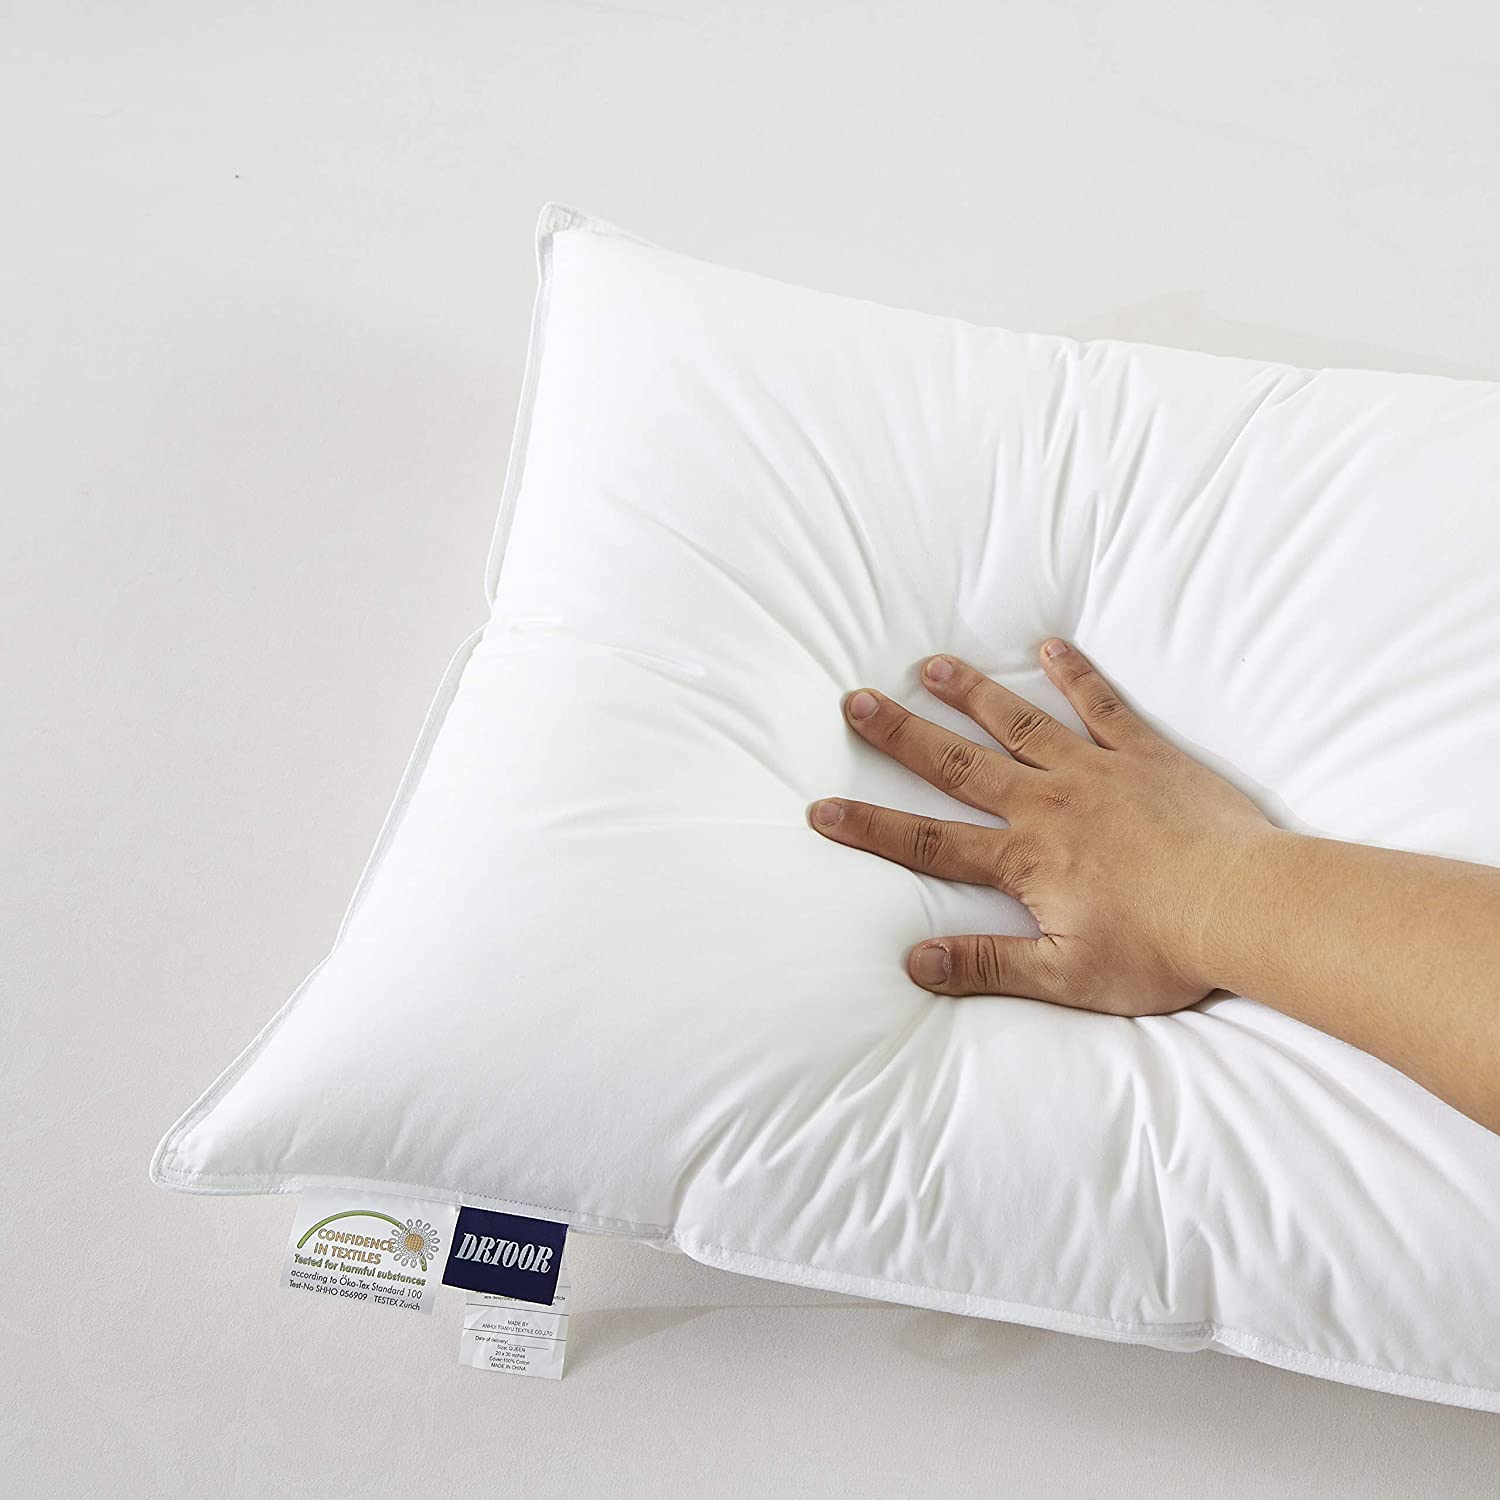 drtoor Sleeping Pillow Polyester Filling Soft Comfortable Anti-Dust Wrinkle Resistance Bedding Pillow 2 Packs White /…